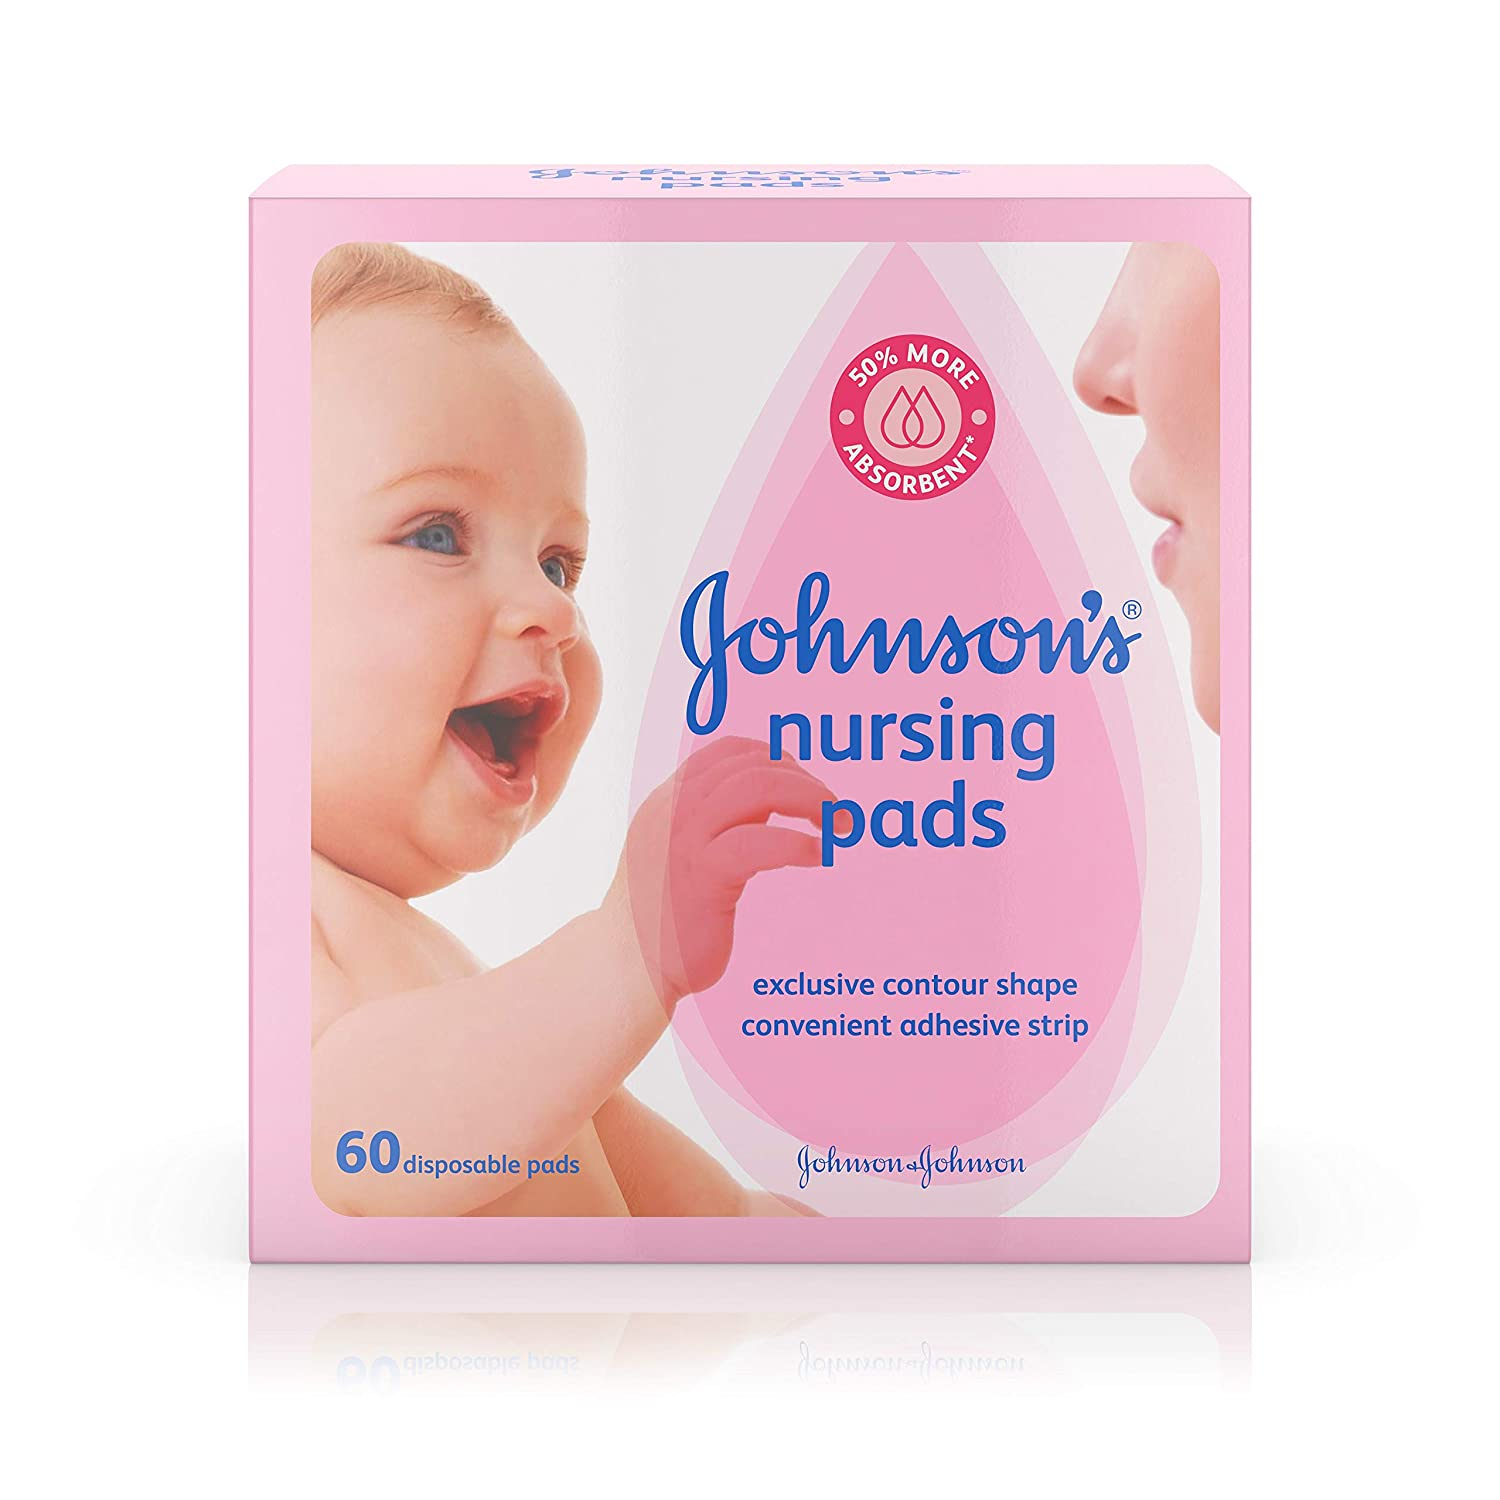 Johnson' s Disposable Nursing Pads with Natural Cotton and Natural Contour Shape, 60 ct (Packaging May Vary) Johnson' s JJ-092